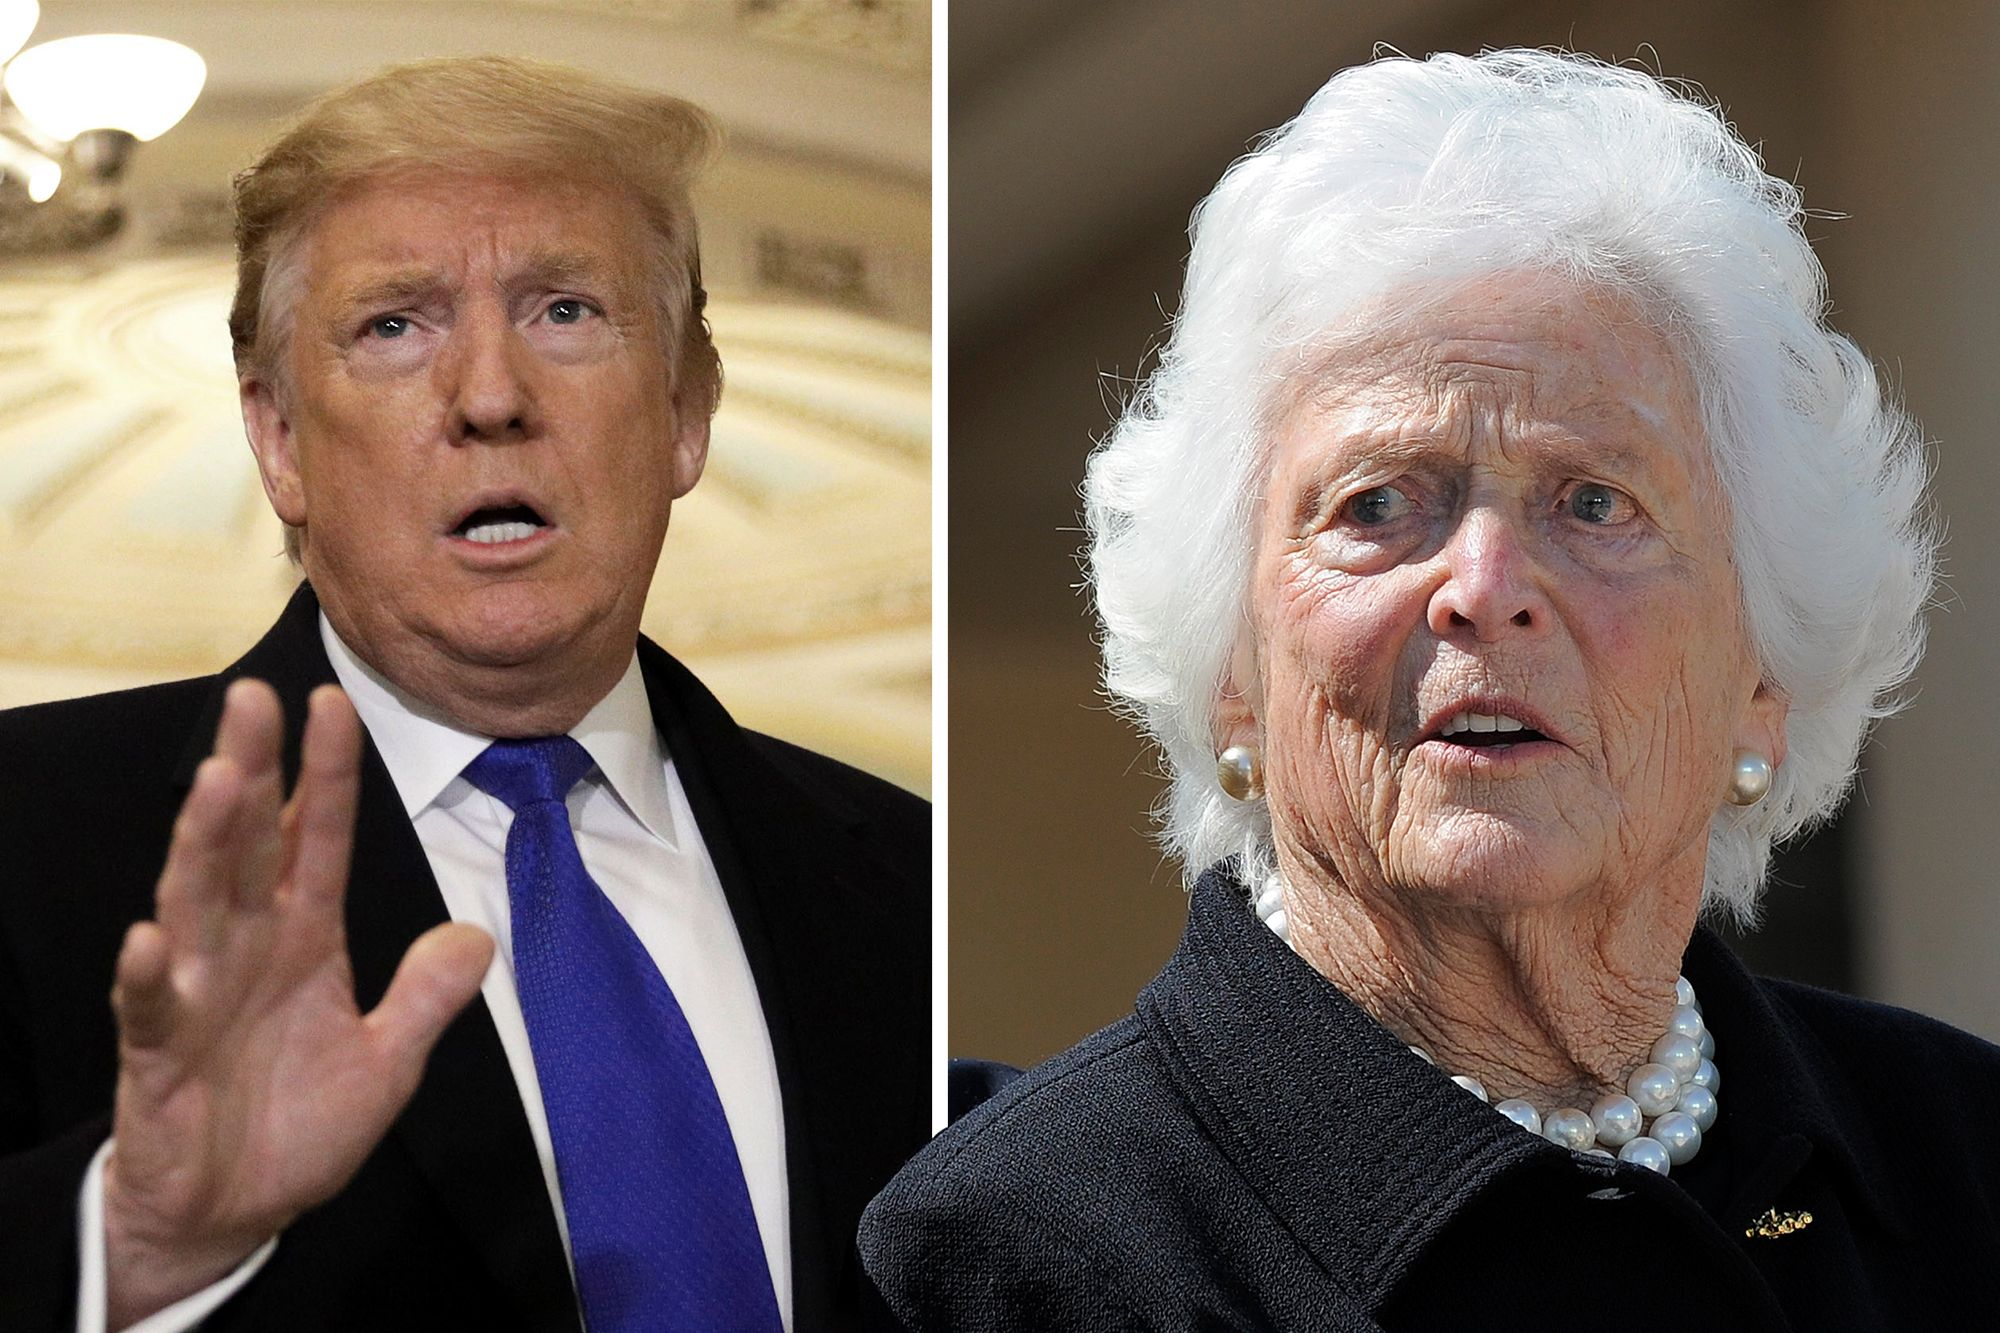 barbara-bush-was-no-longer-a-republican-because-of-donald-trump-blames-her-heart-attack-on-him-in-new-biography